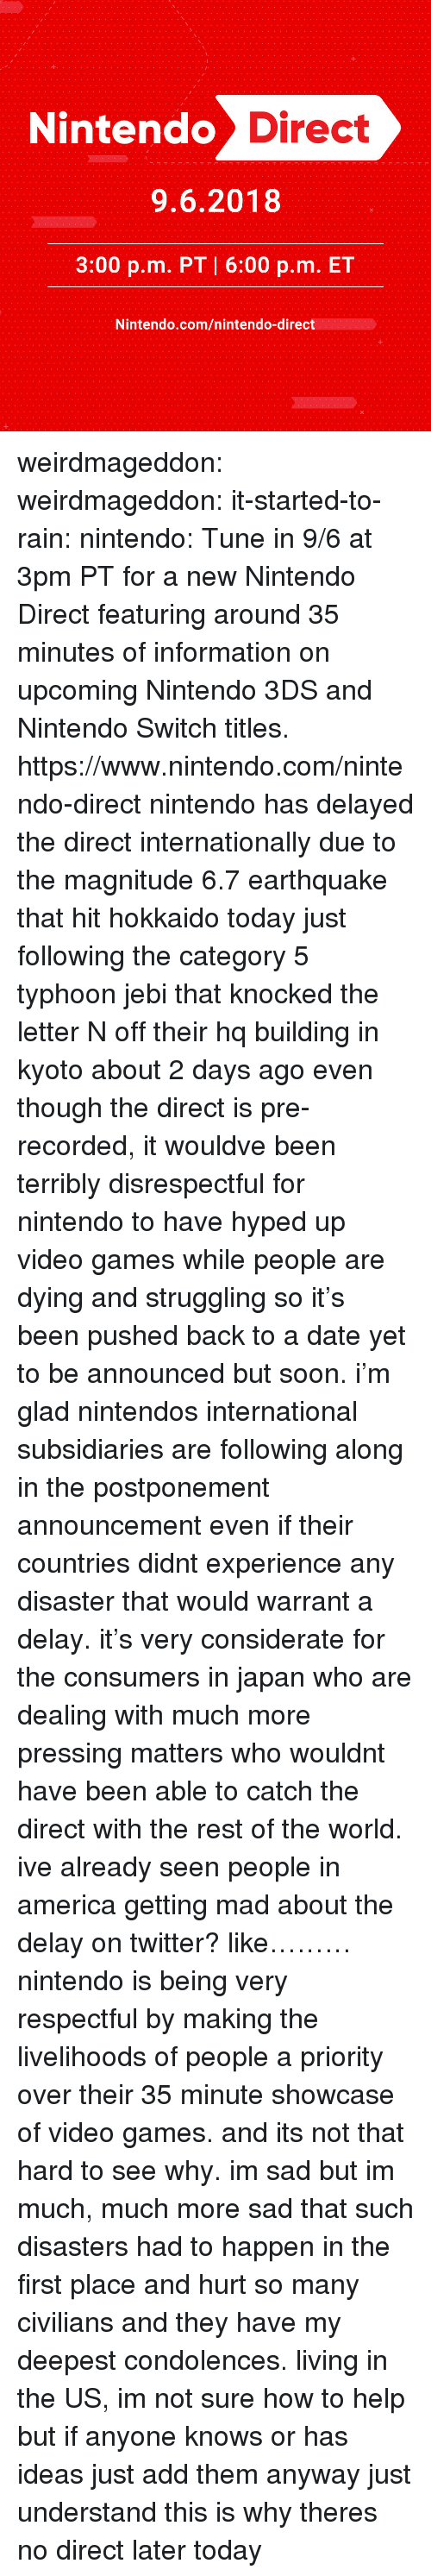 Condolences: -1  1  Nintendo D  irect  9.6.2018  3:00 p.m. PT 6:00 p.m. ET  Nintendo.com/nintendo-direct weirdmageddon:  weirdmageddon:  it-started-to-rain:  nintendo:  Tune in 9/6 at 3pm PT for a new Nintendo Direct featuring around 35 minutes of information on upcoming Nintendo 3DS and Nintendo Switch titles.   https://www.nintendo.com/nintendo-direct     nintendo has delayed the direct internationally due to the magnitude 6.7 earthquake that hit hokkaido today just following the category 5 typhoon jebi that knocked the letter N off their hq building in kyoto about 2 days ago even though the direct is pre-recorded, it wouldve been terribly disrespectful for nintendo to have hyped up video games while people are dying and struggling so it's been pushed back to a date yet to be announced but soon. i'm glad nintendos international subsidiaries are following along in the postponement announcement even if their countries didnt experience any disaster that would warrant a delay. it's very considerate for the consumers in japan who are dealing with much more pressing matters who wouldnt have been able to catch the direct with the rest of the world. ive already seen people in america getting mad about the delay on twitter? like………nintendo is being very respectful by making the livelihoods of people a priority over their 35 minute showcase of video games. and its not that hard to see why. im sad but im much, much more sad that such disasters had to happen in the first place and hurt so many civilians and they have my deepest condolences. living in the US, im not sure how to help but if anyone knows or has ideas just add them anyway just understand this is why theres no direct later today